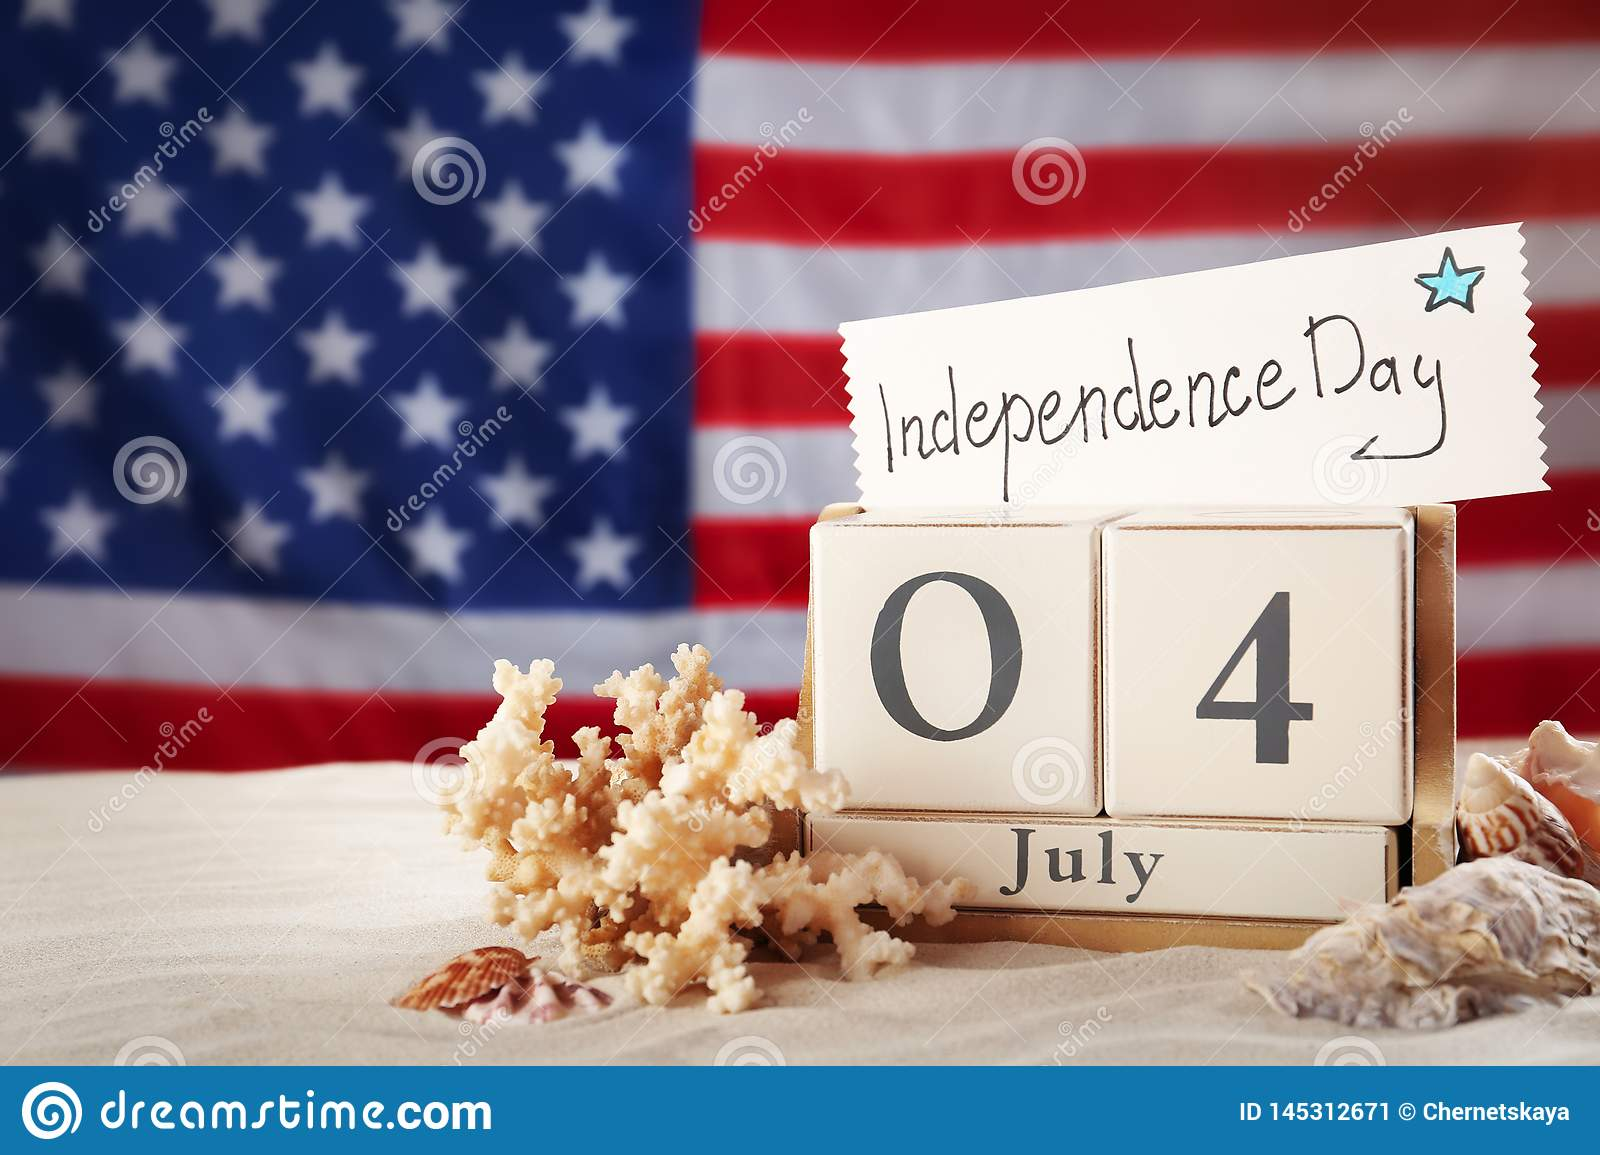 Composition with wooden calendar and card on sand against USA flag. Happy Independence Day